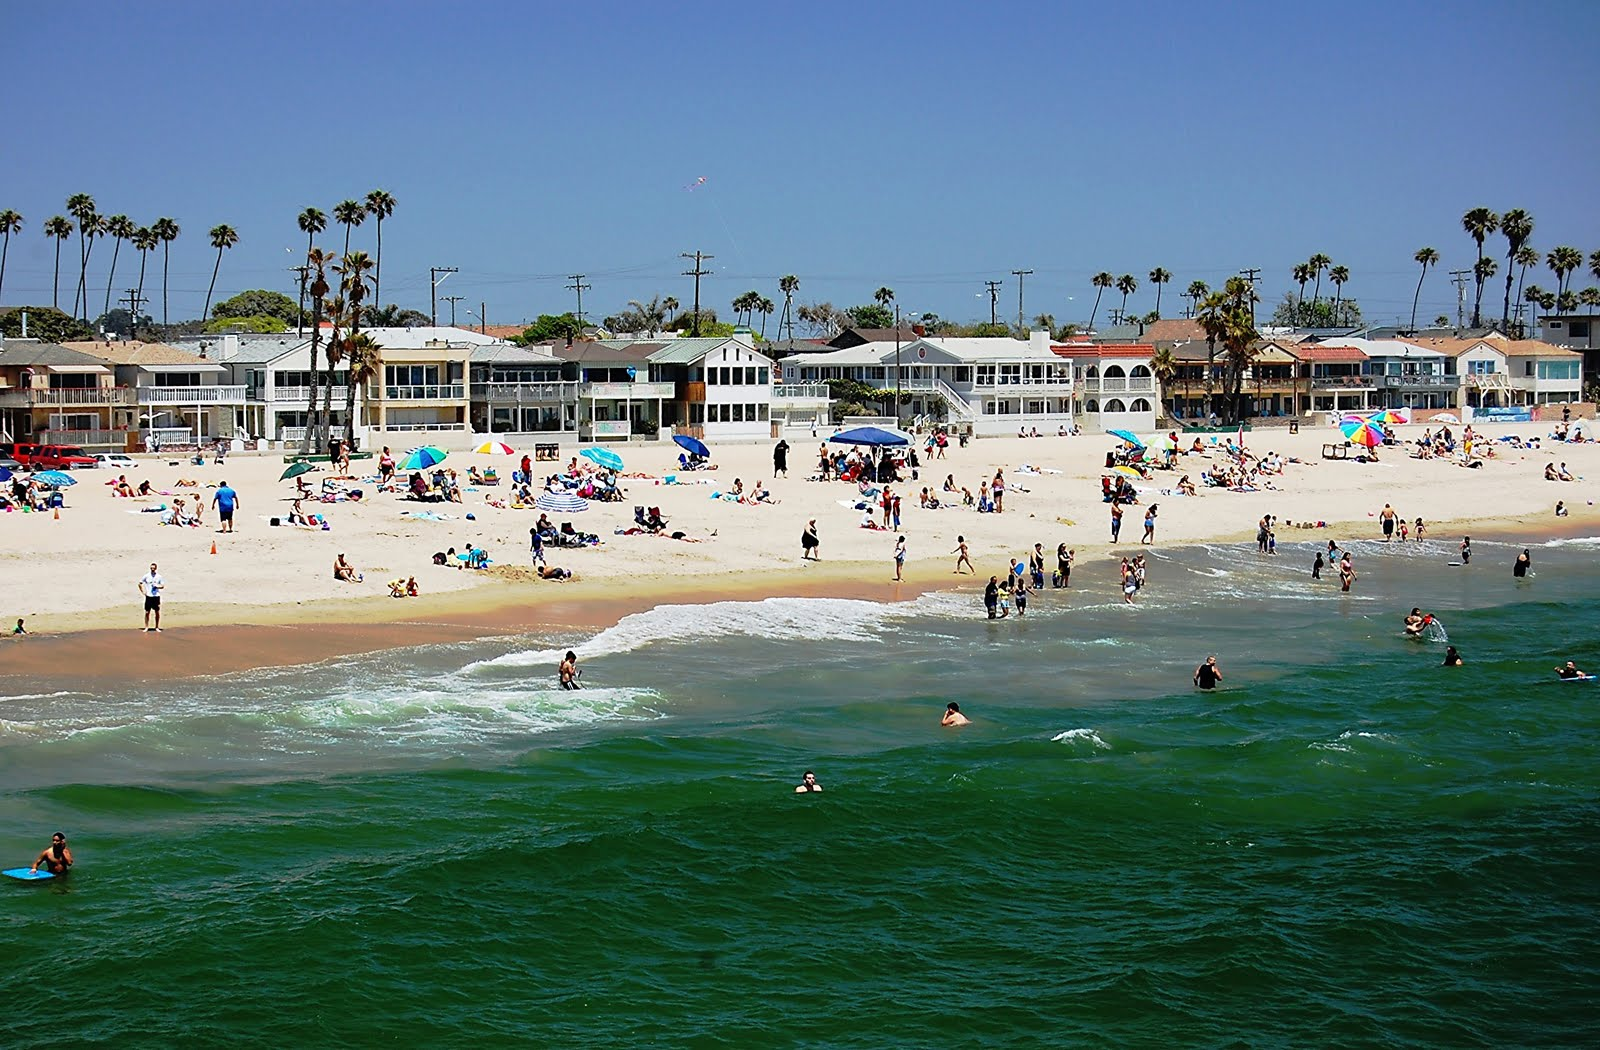 Welcome to Homestay of Long Beach, a Homestay program in California